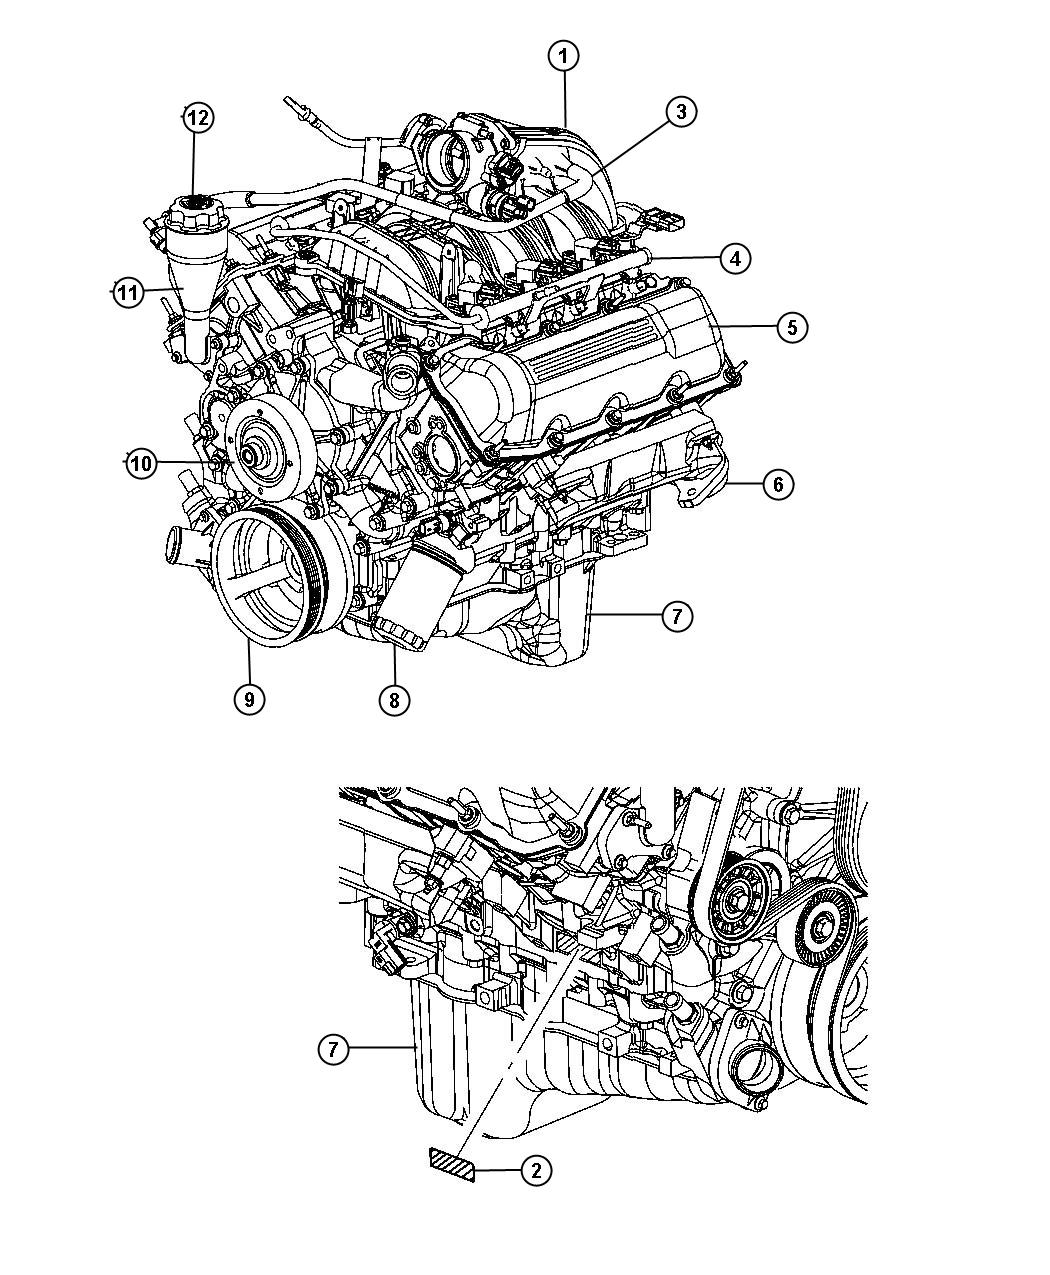 jeep liberty 3 7l engine diagram  jeep  auto wiring diagram